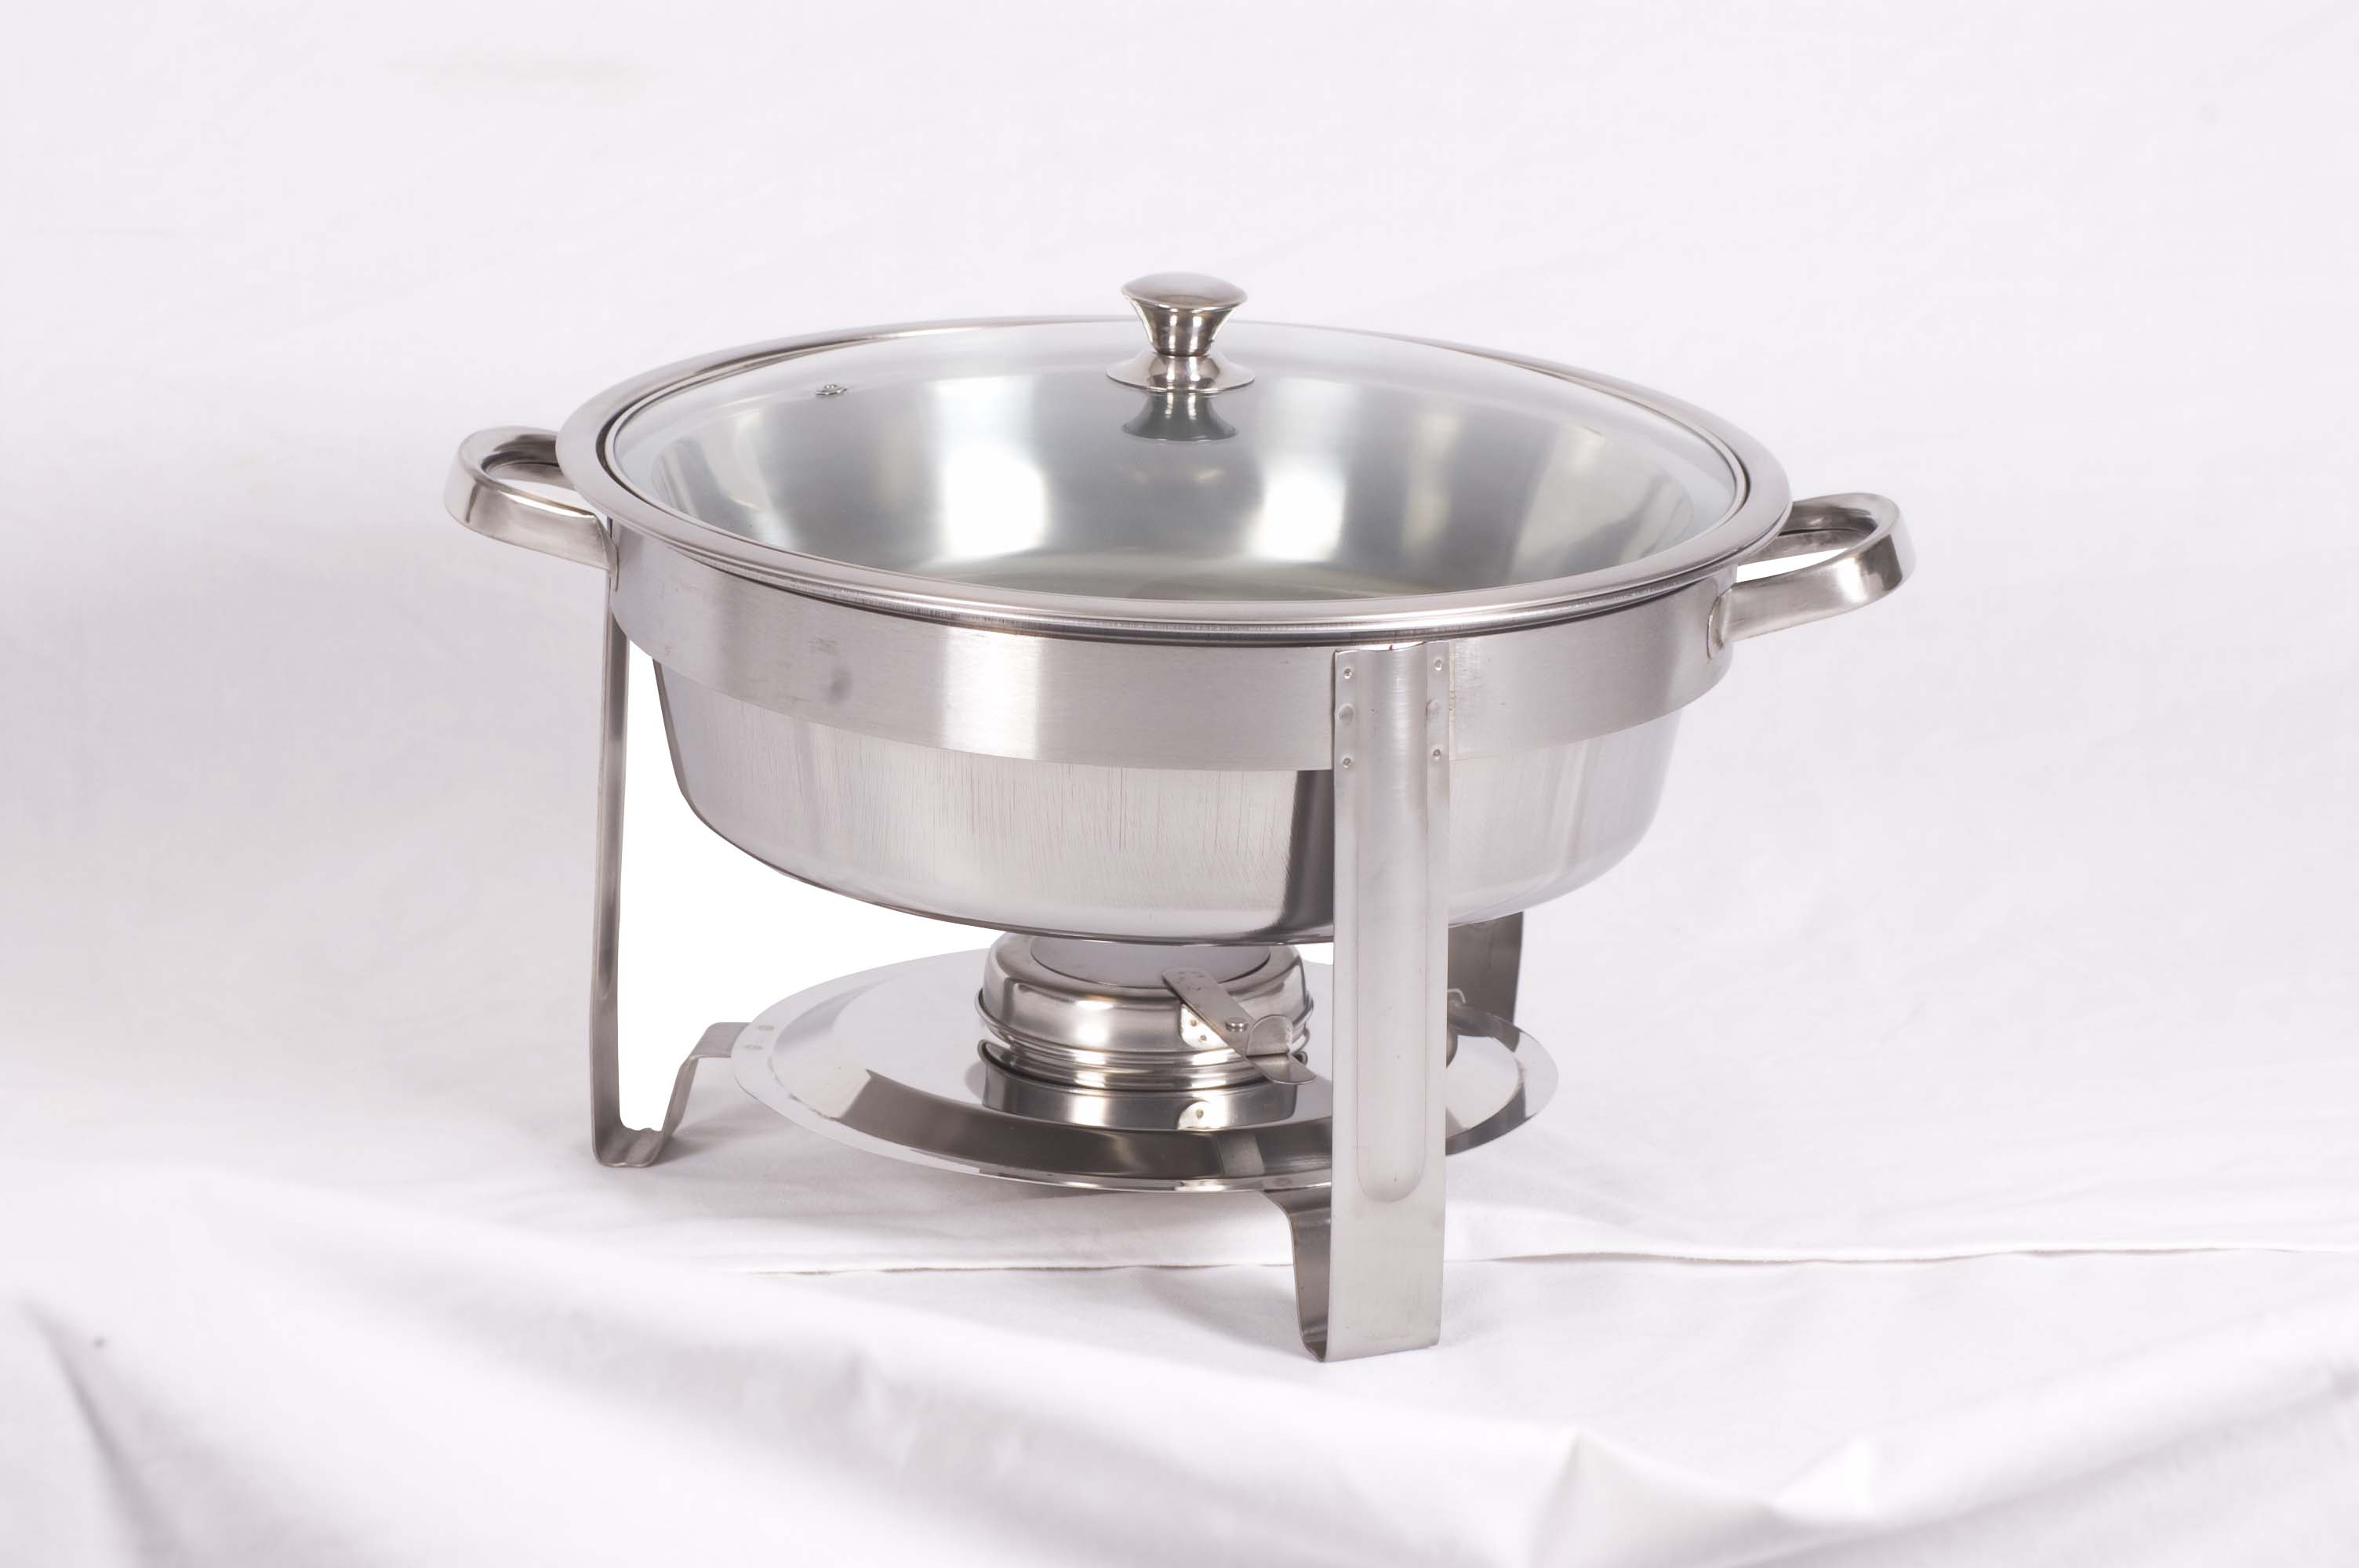 CHAFING DISH ROUND WITH GLASS LID - POLISHED 4Lt